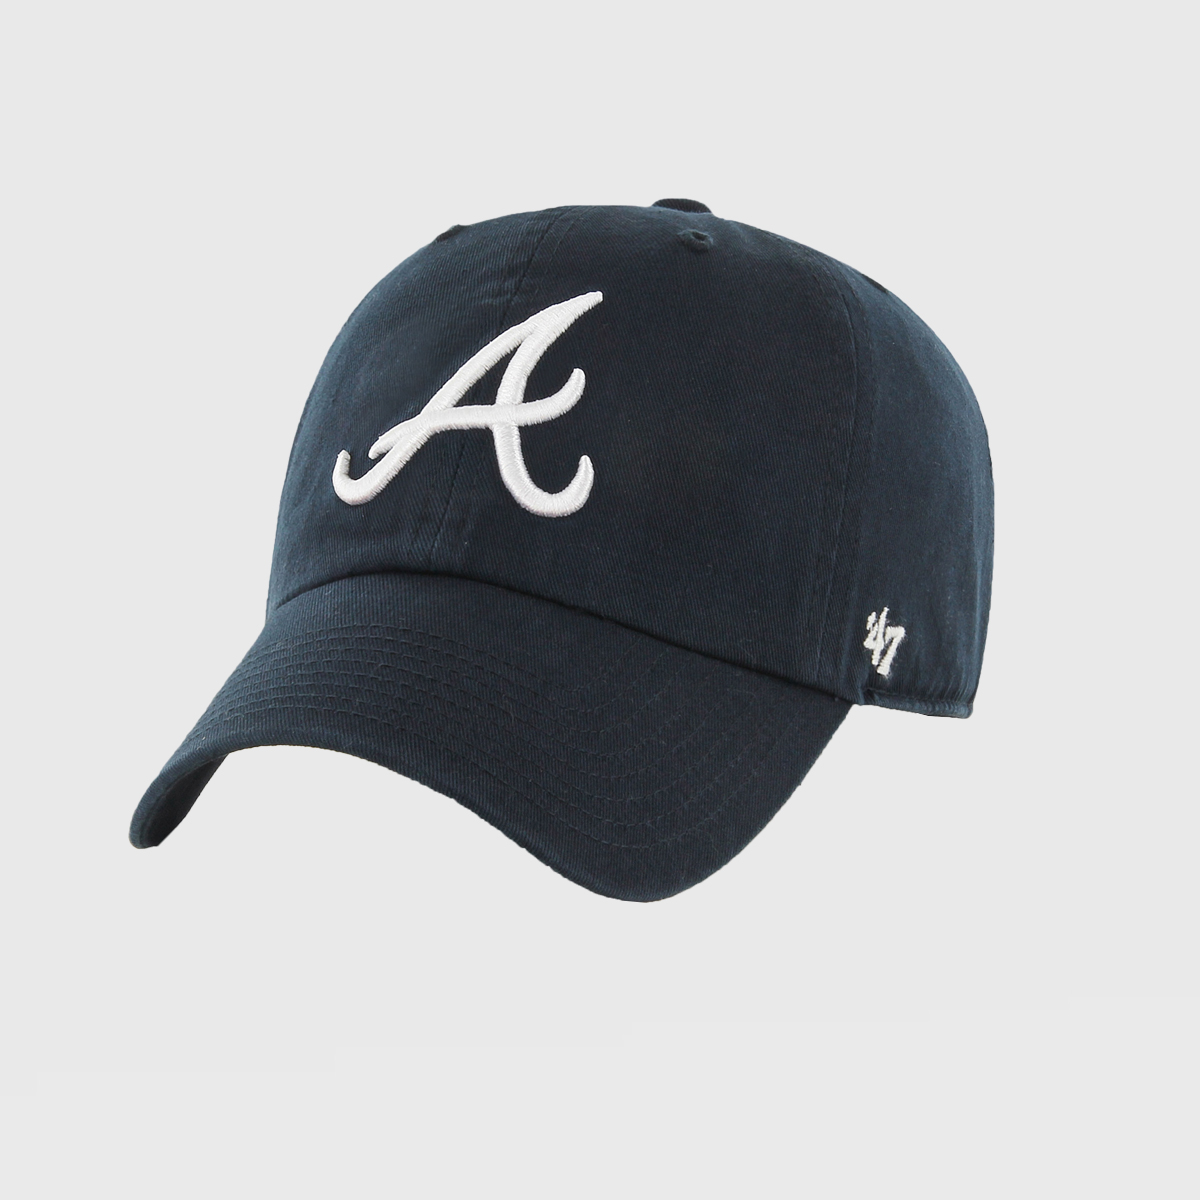 БЕЙСБОЛКА '47 BRAND CLEAN UP ATLANTA BRAVES NAVY